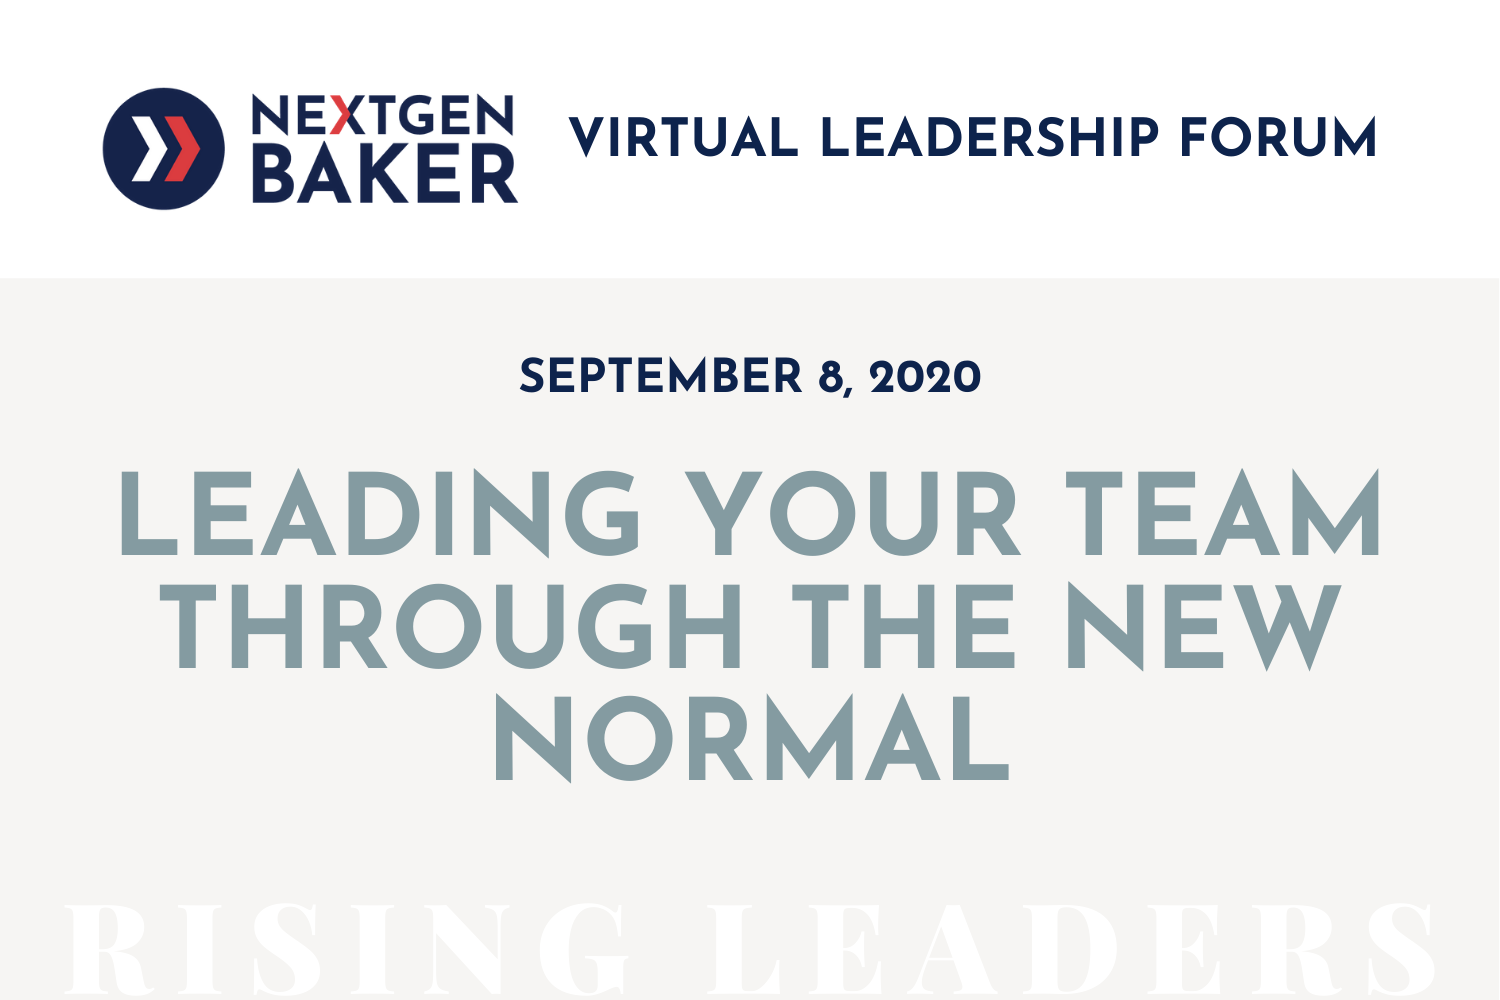 ngb Leading Your Team Through the New Normal